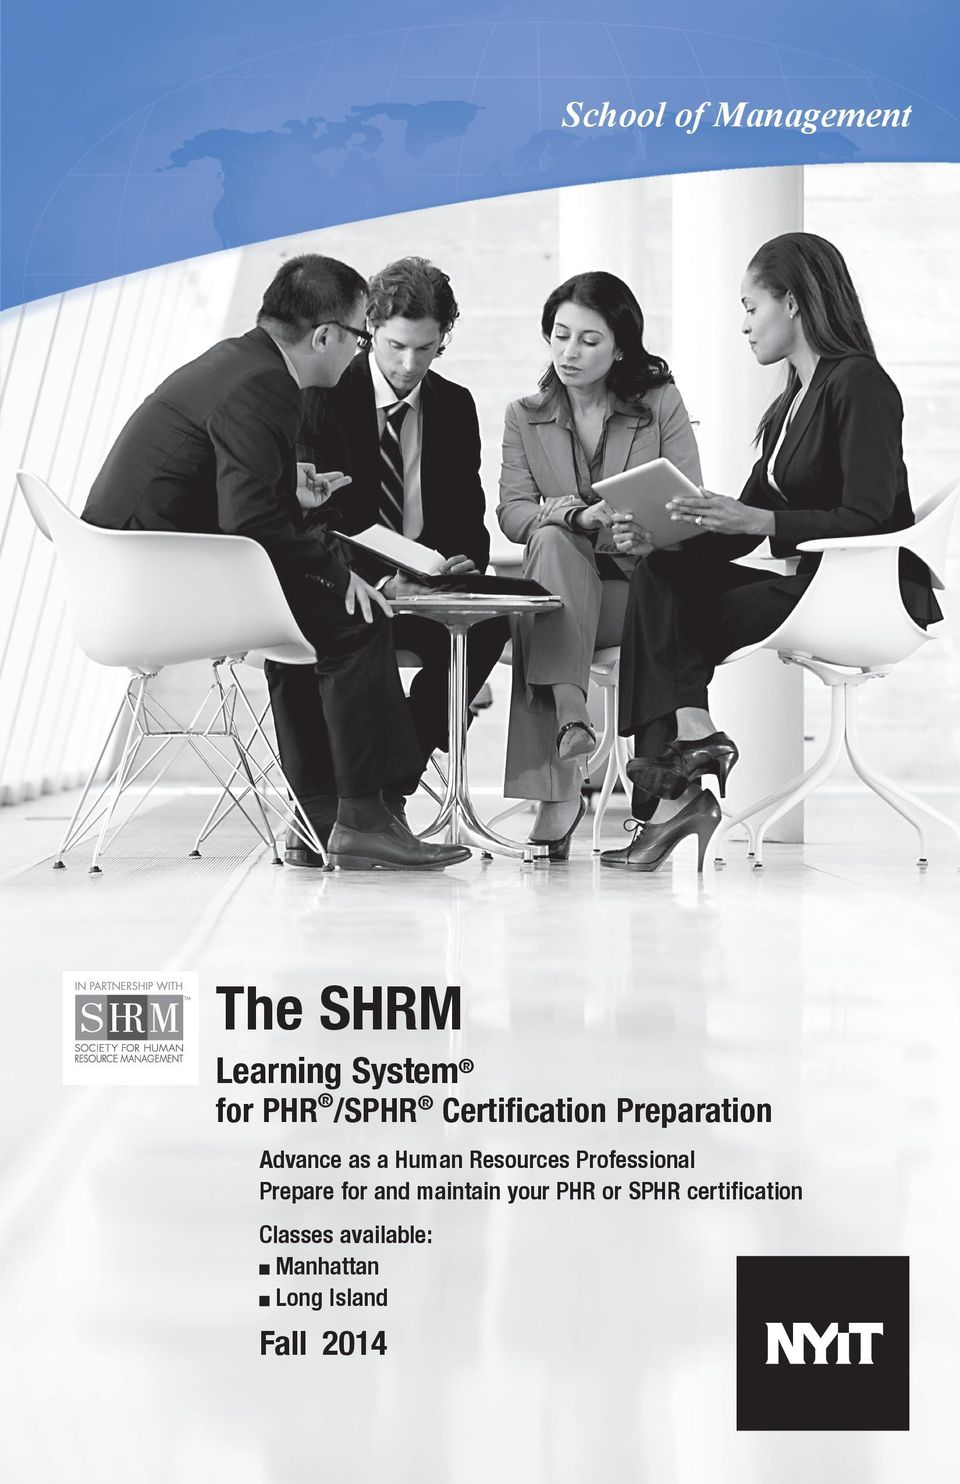 The Shrm School Of Management Learning System For Phr Sphr